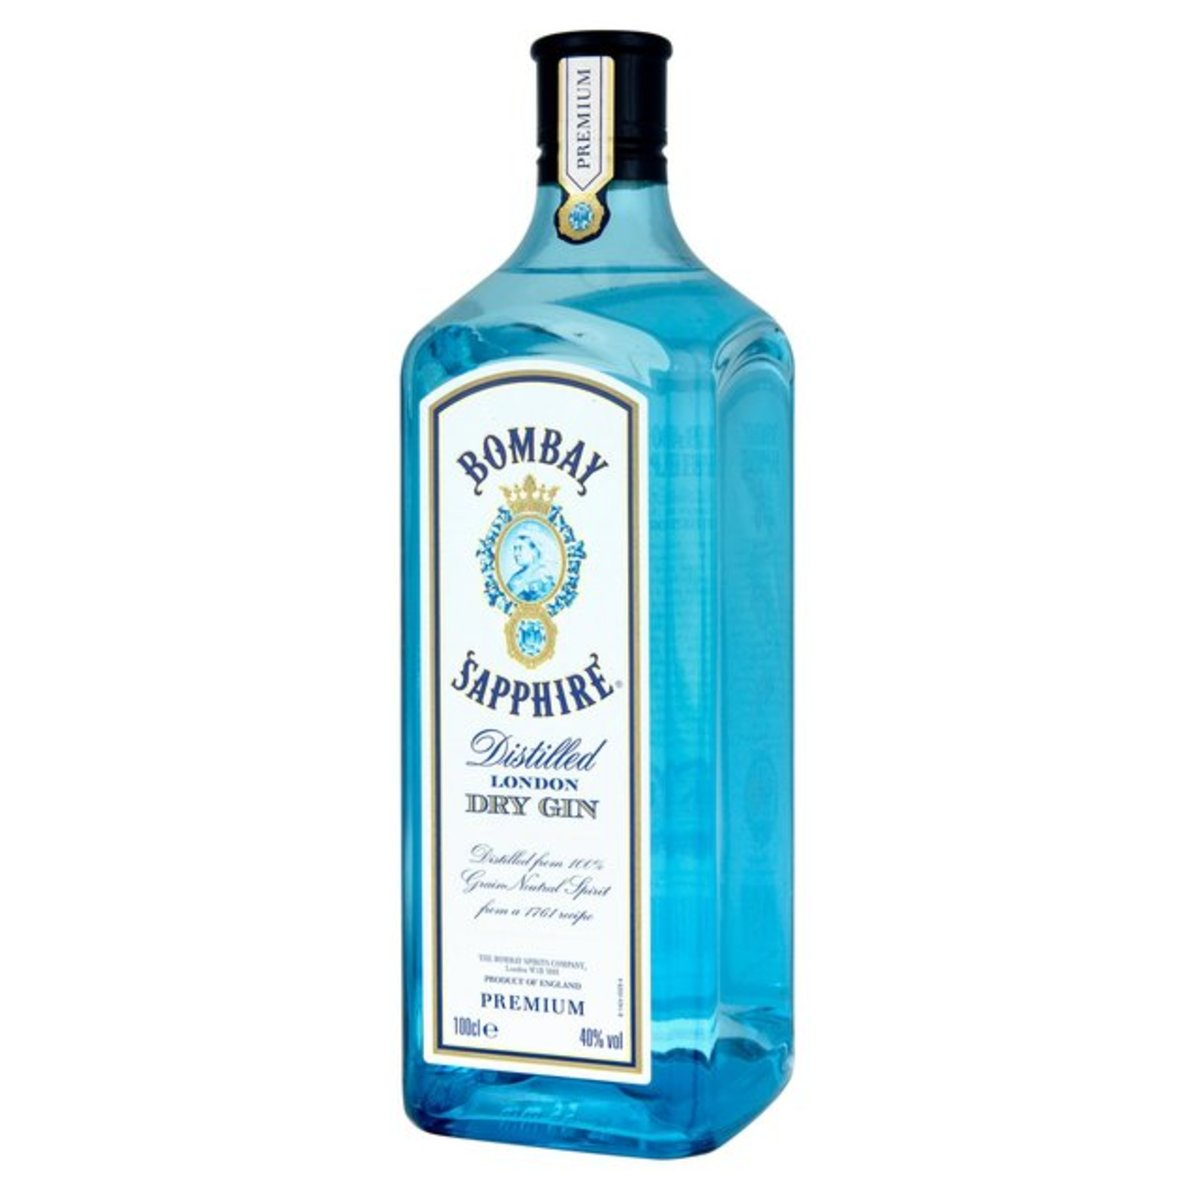 The great thing about Bombay Sapphire is the balance of the botanicals and the crispness of the taste. Considered a gateway gin by many, the brand is nonetheless very popular with the drinking public, thanks to its subtle and floral flavor.